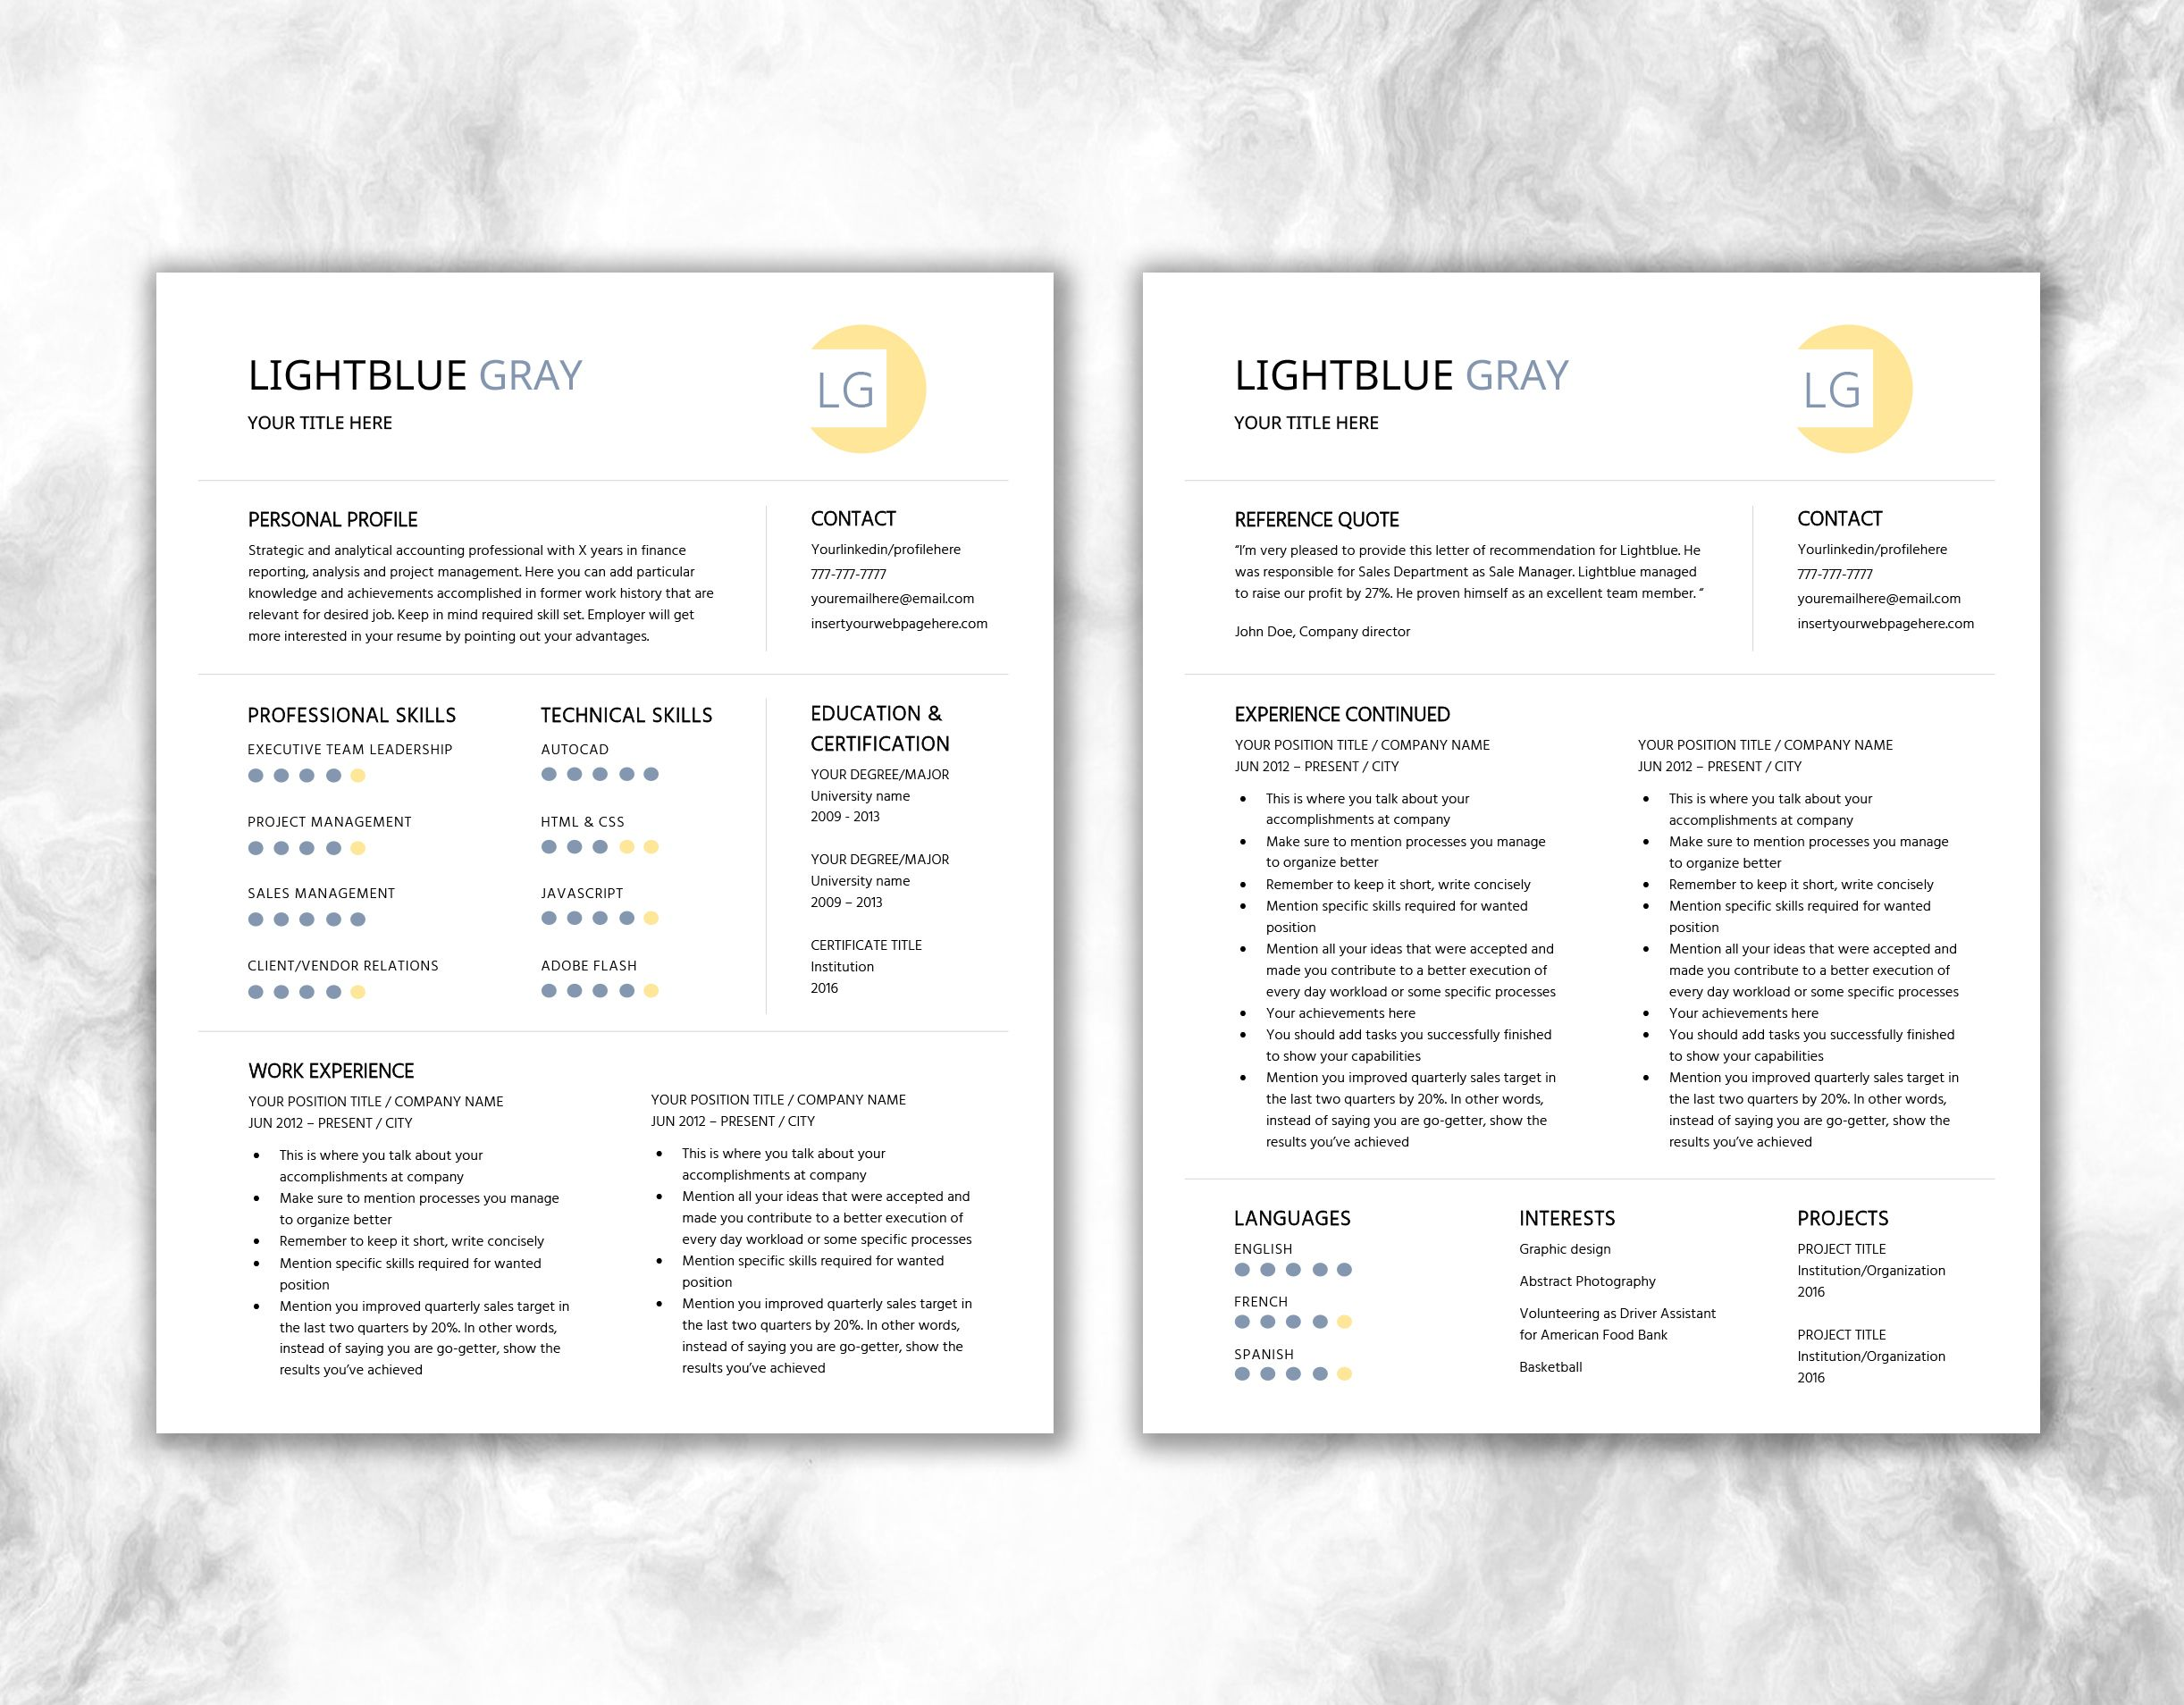 Download Resume Printable Template + Resume Writing Tips + Cover ...